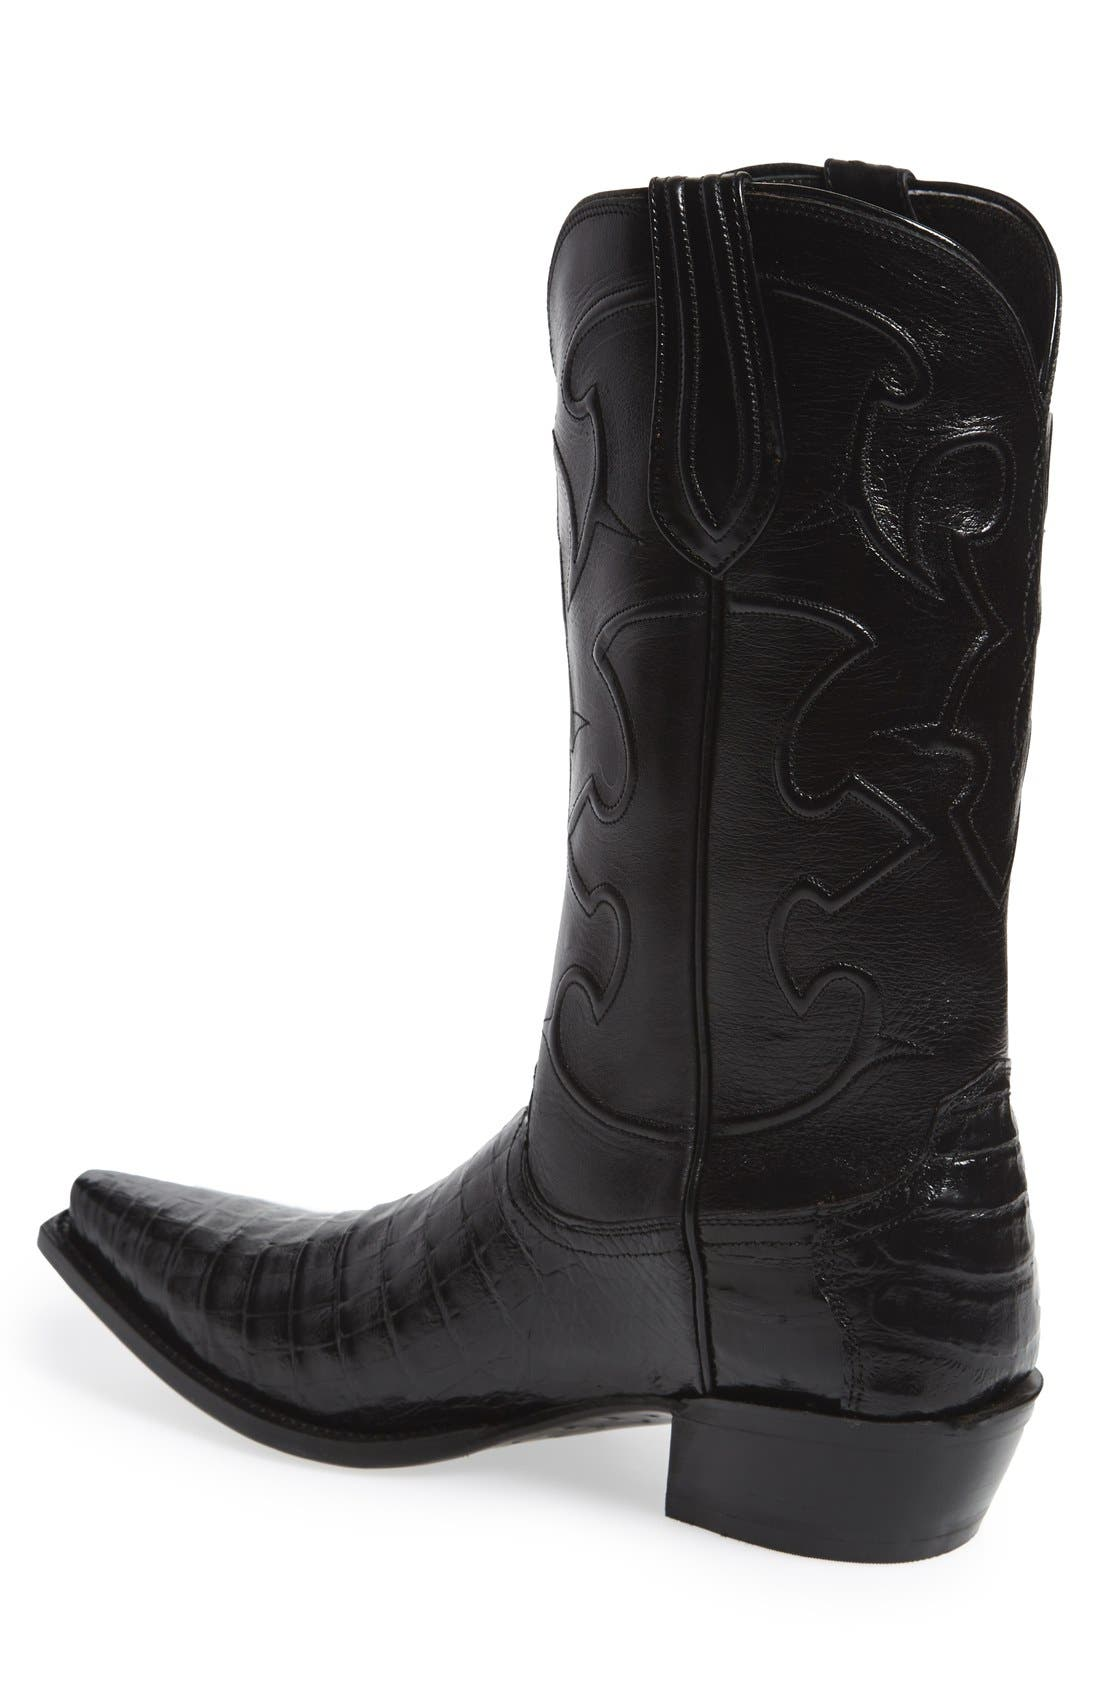 LUCCHESE,                             'Charles' Calfskin & Genuine Crocodile Leather Snip Toe Western Boot,                             Alternate thumbnail 3, color,                             002